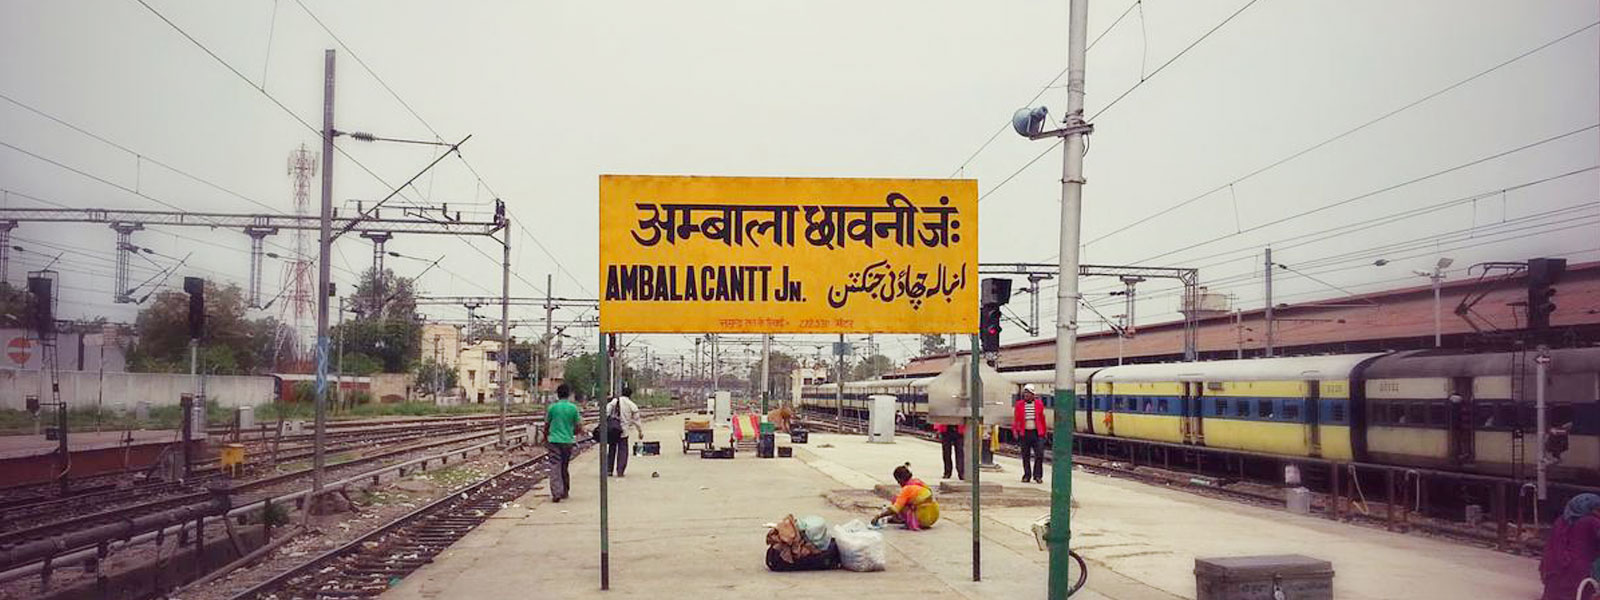 Municipal Corporation Ambala